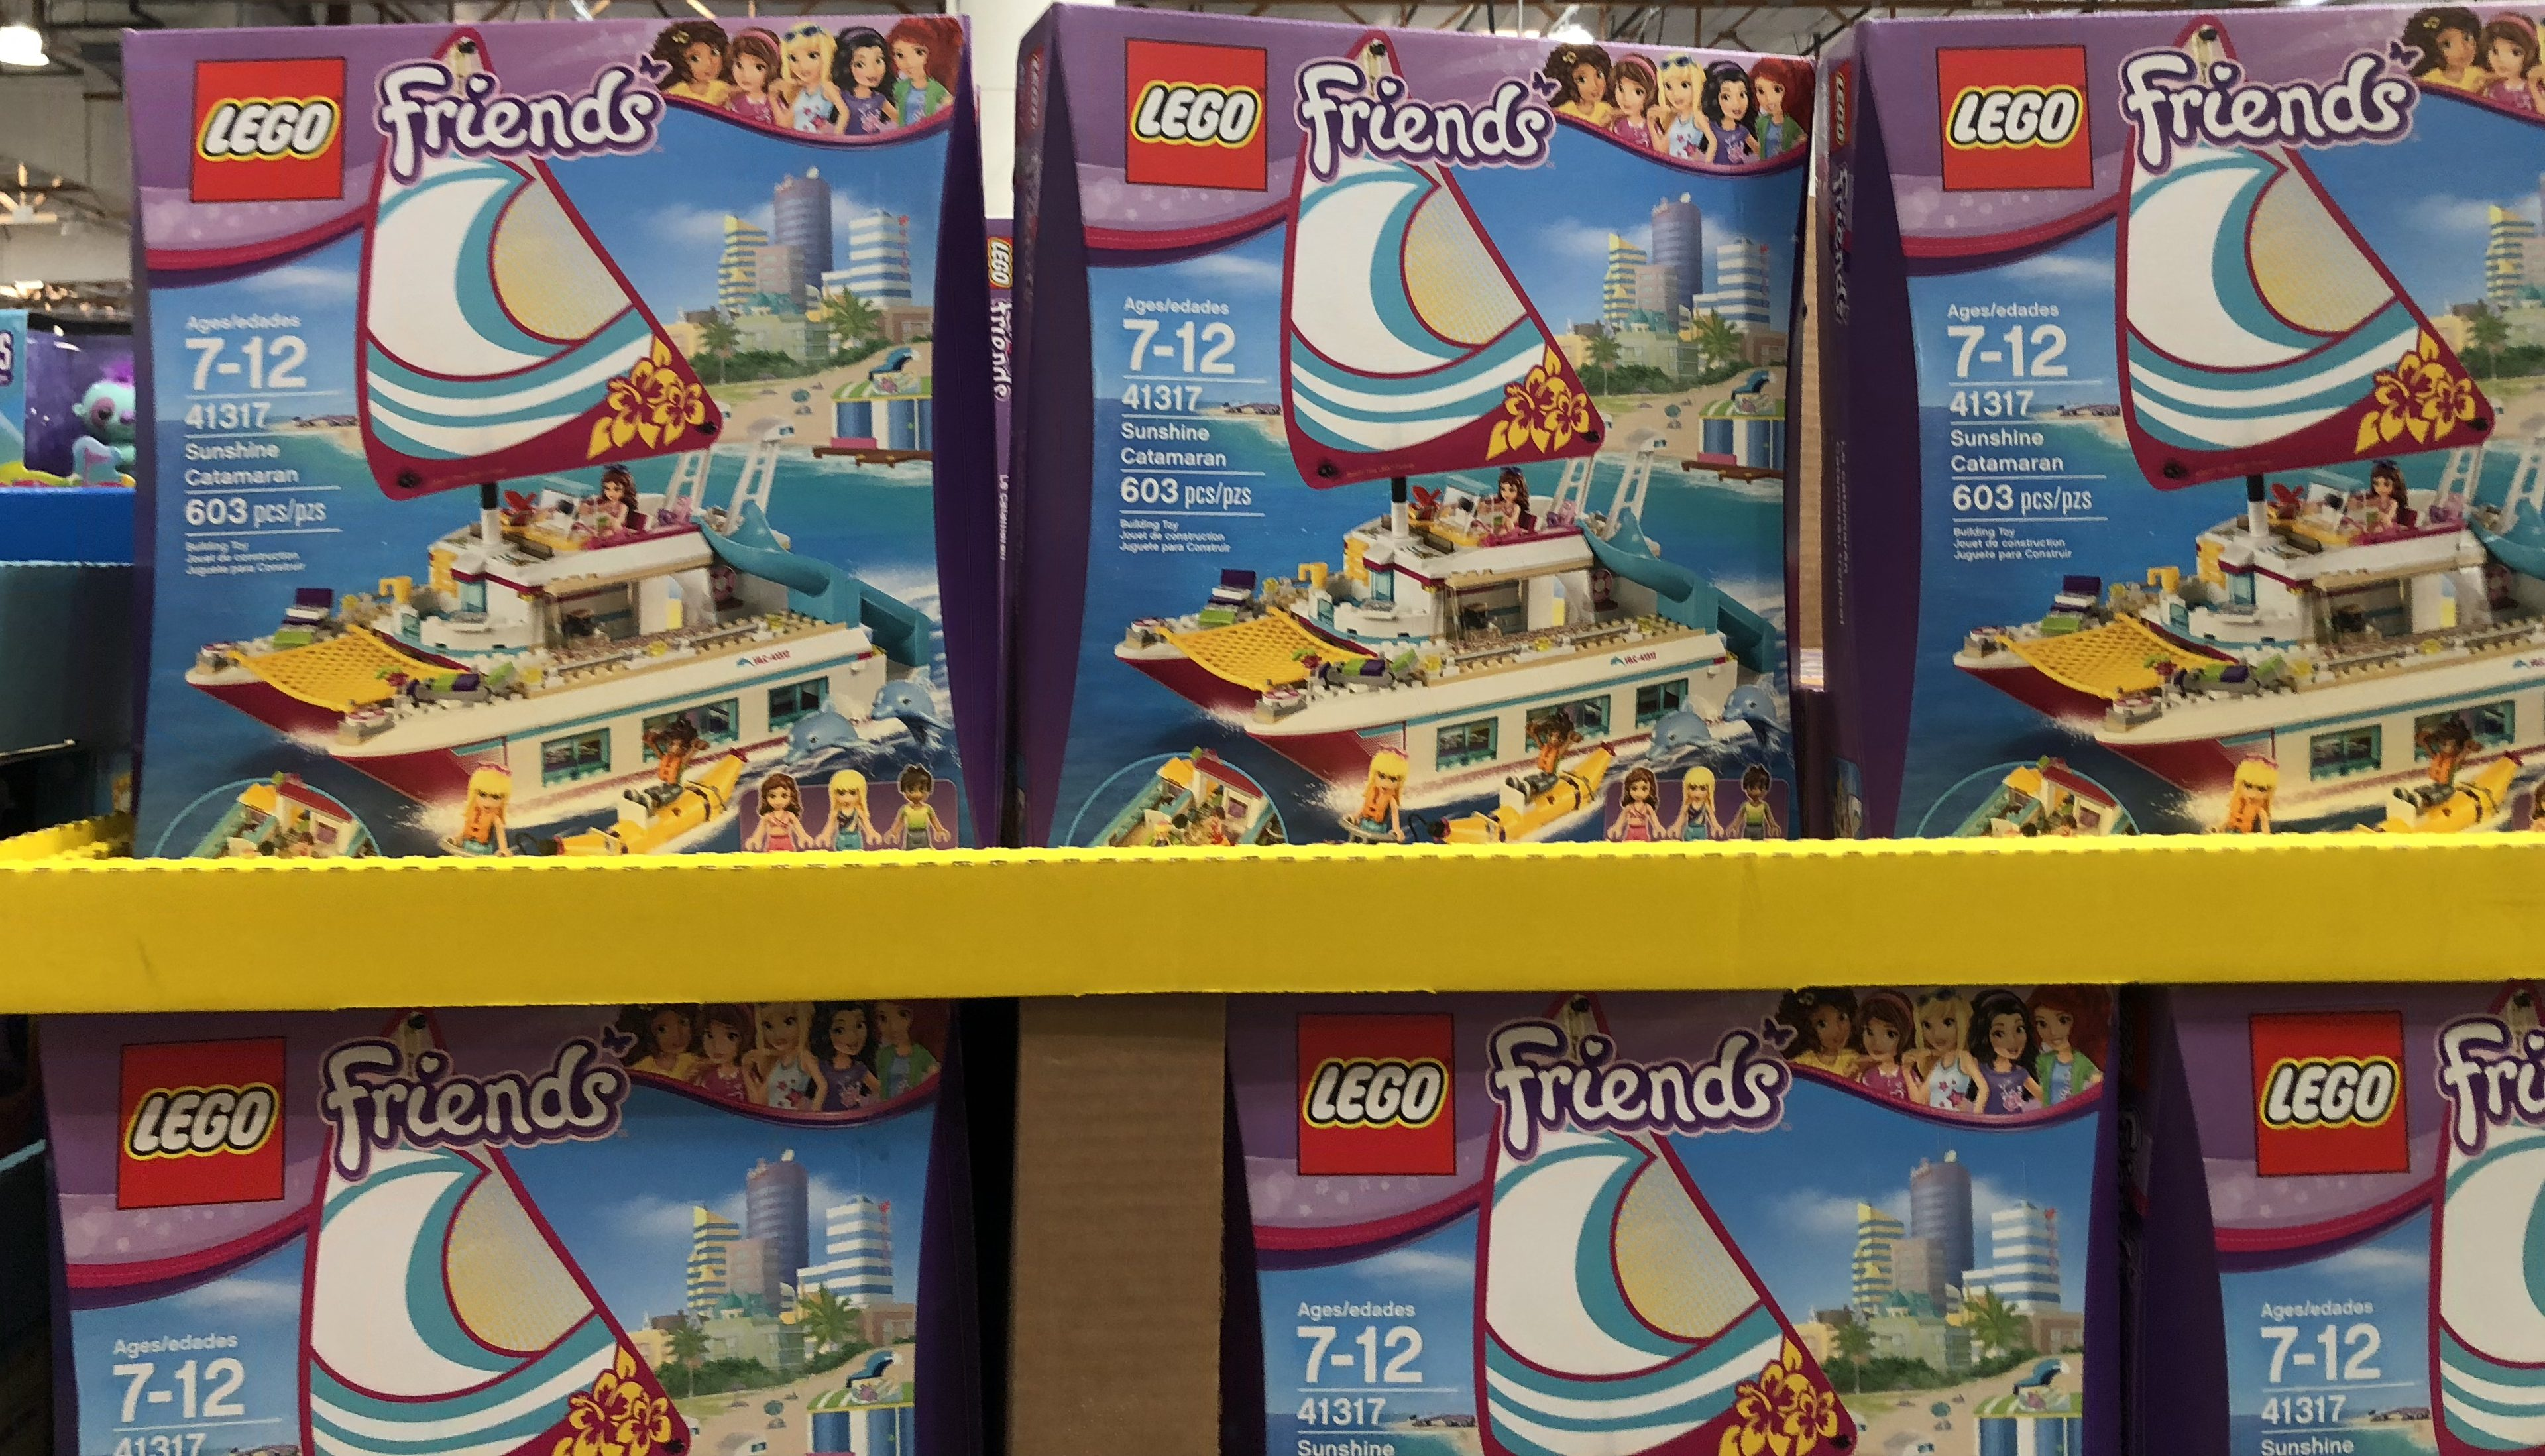 The best holiday toy deals for 2018 include the LEGO Friends Catamaran at Costco